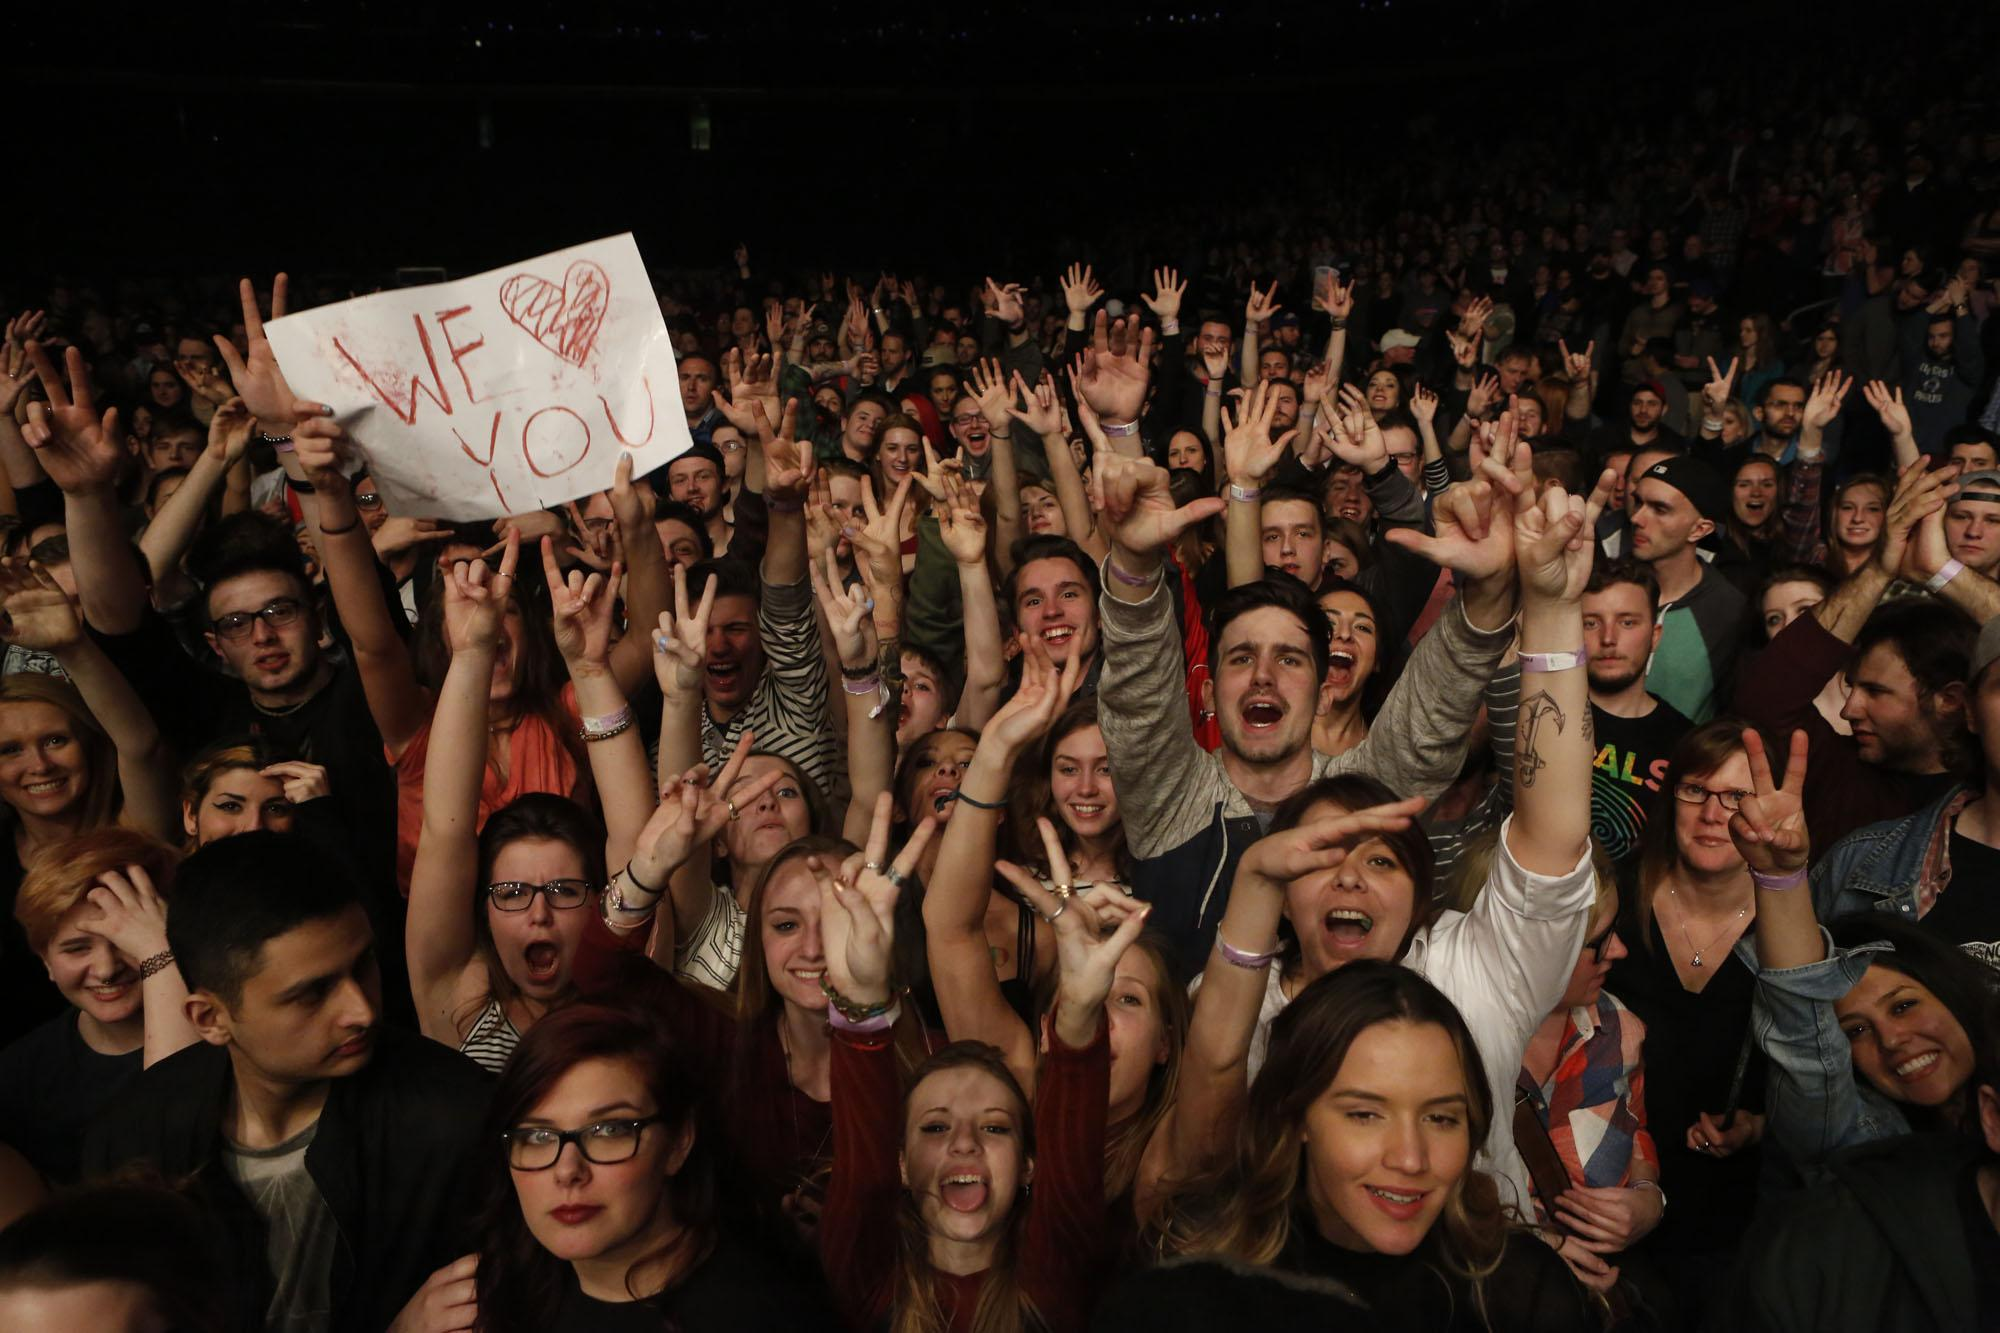 Alt. Buffalo fans get rowdy for a photo during Cage The Elephant's encore performance on March 28.